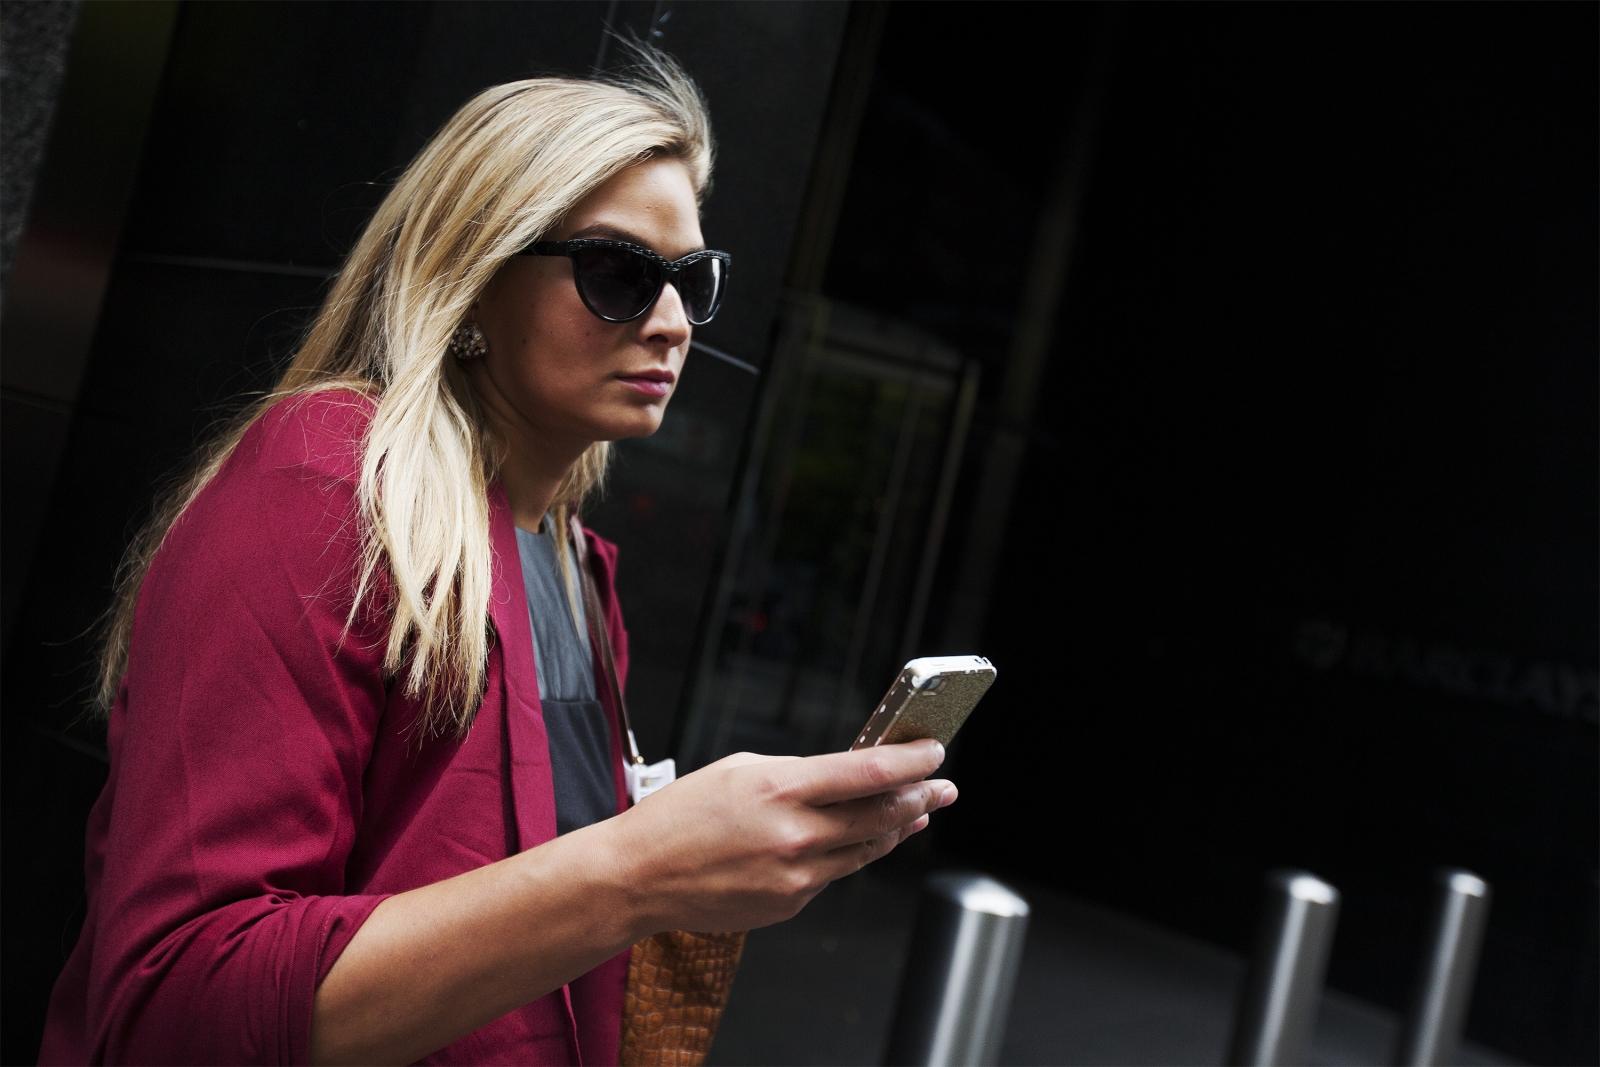 Woman using an iPhone